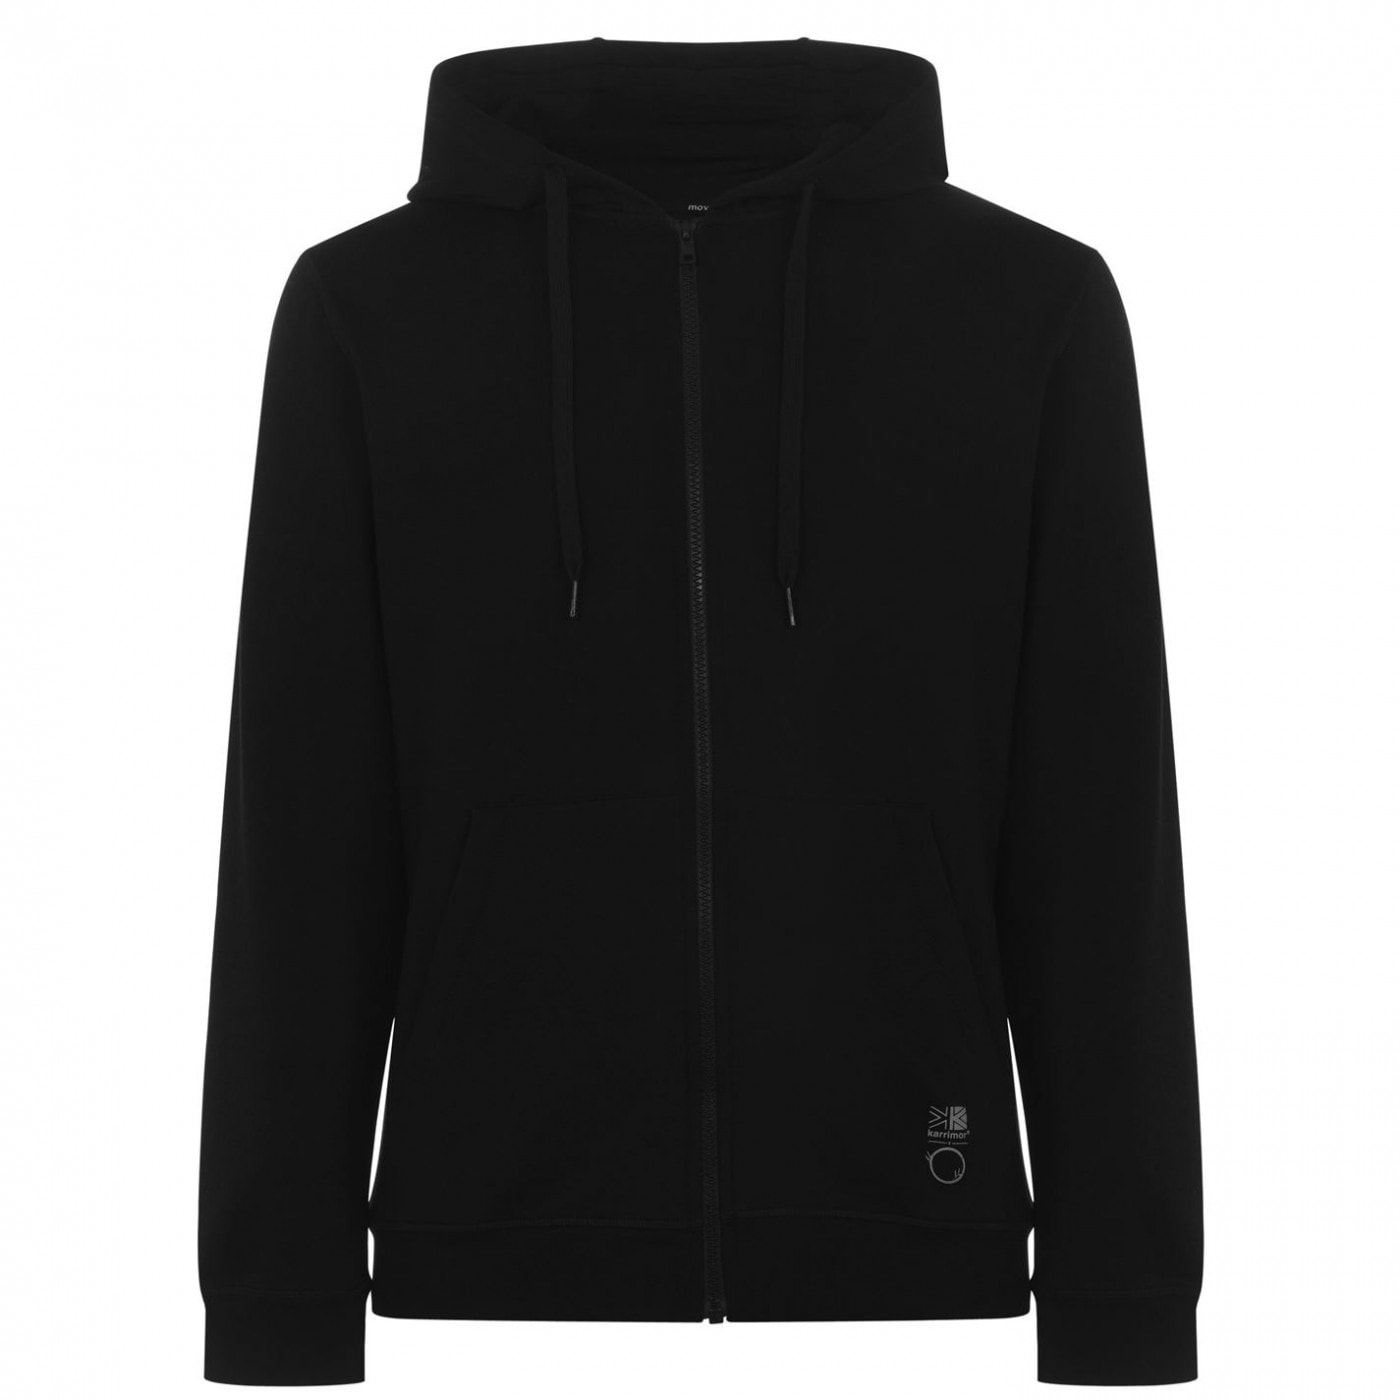 Karrimor X OM Sustainable Ultra Soft Bamboo and Organic Cotton Zipped Fleece Hoodie